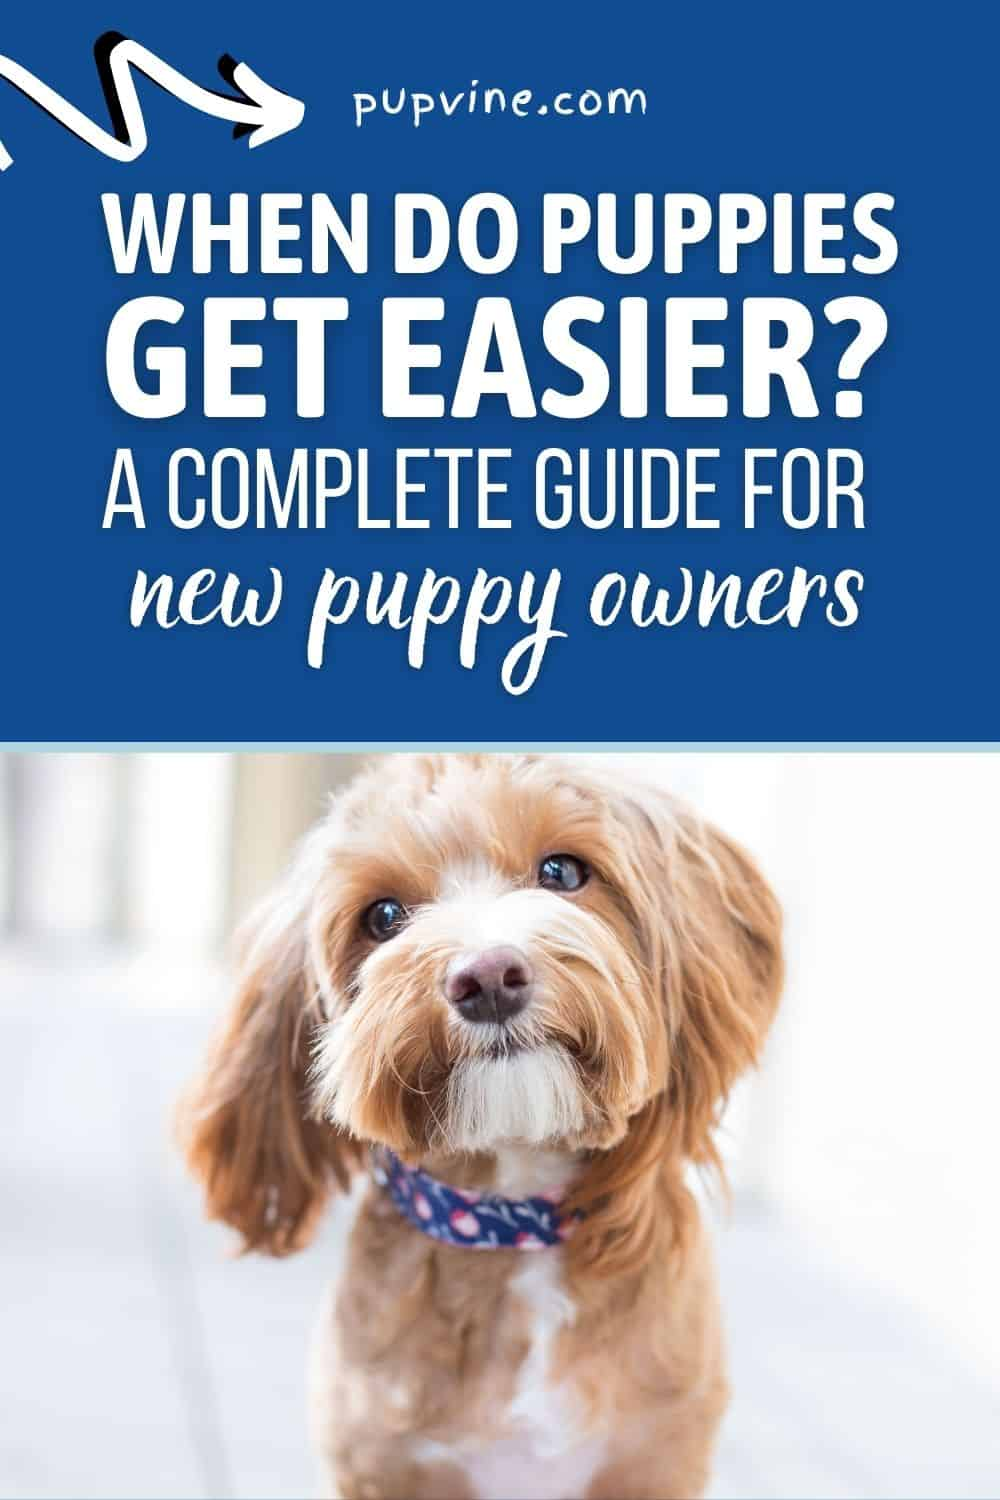 When Do Puppies Get Easier? A Complete Guide For New Puppy Owners